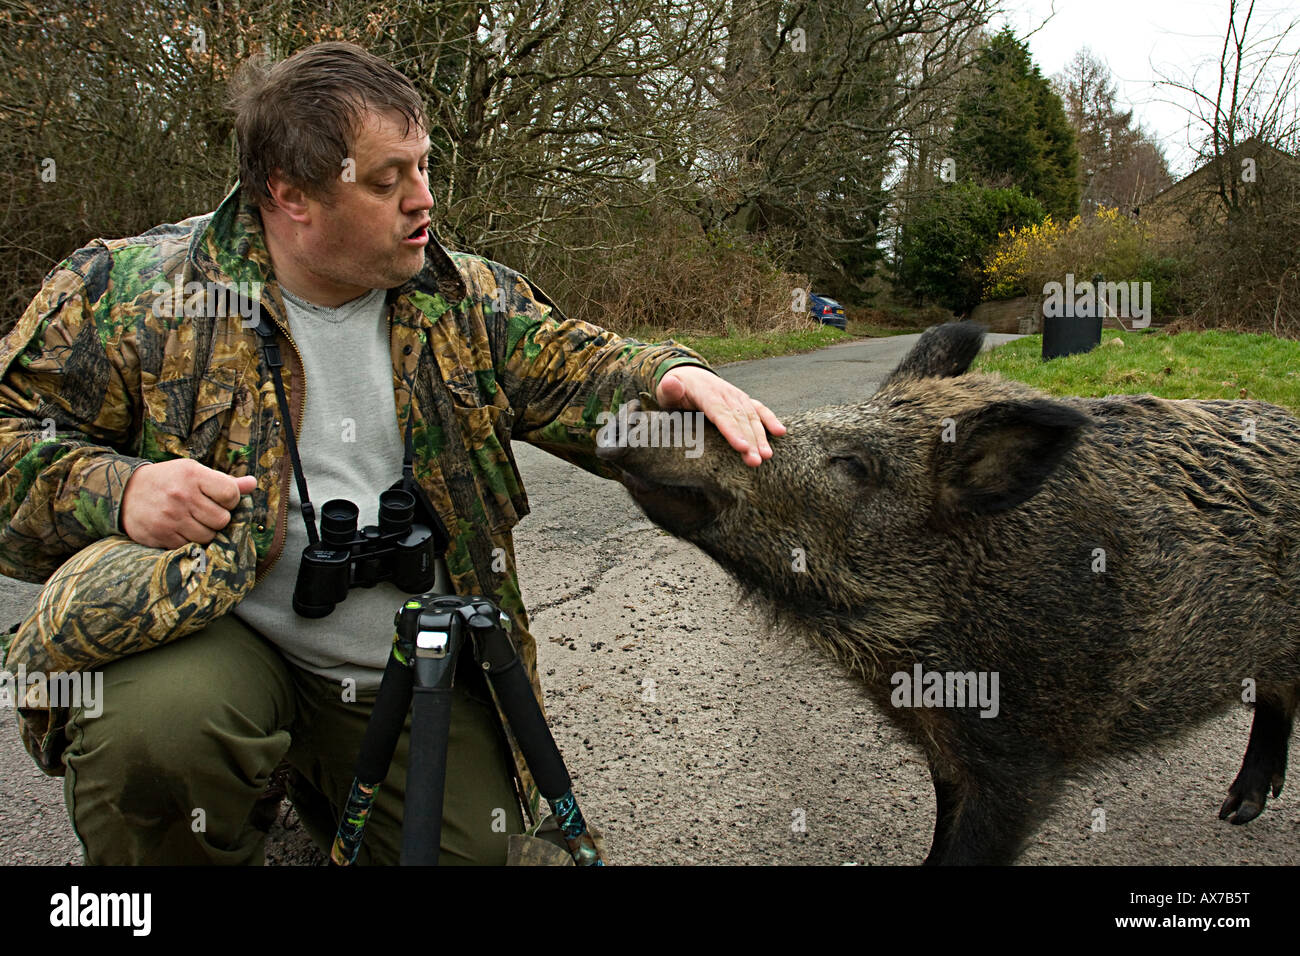 WILD BOAR with wildlife enthusiast. Forest of Dean, UK - Stock Image